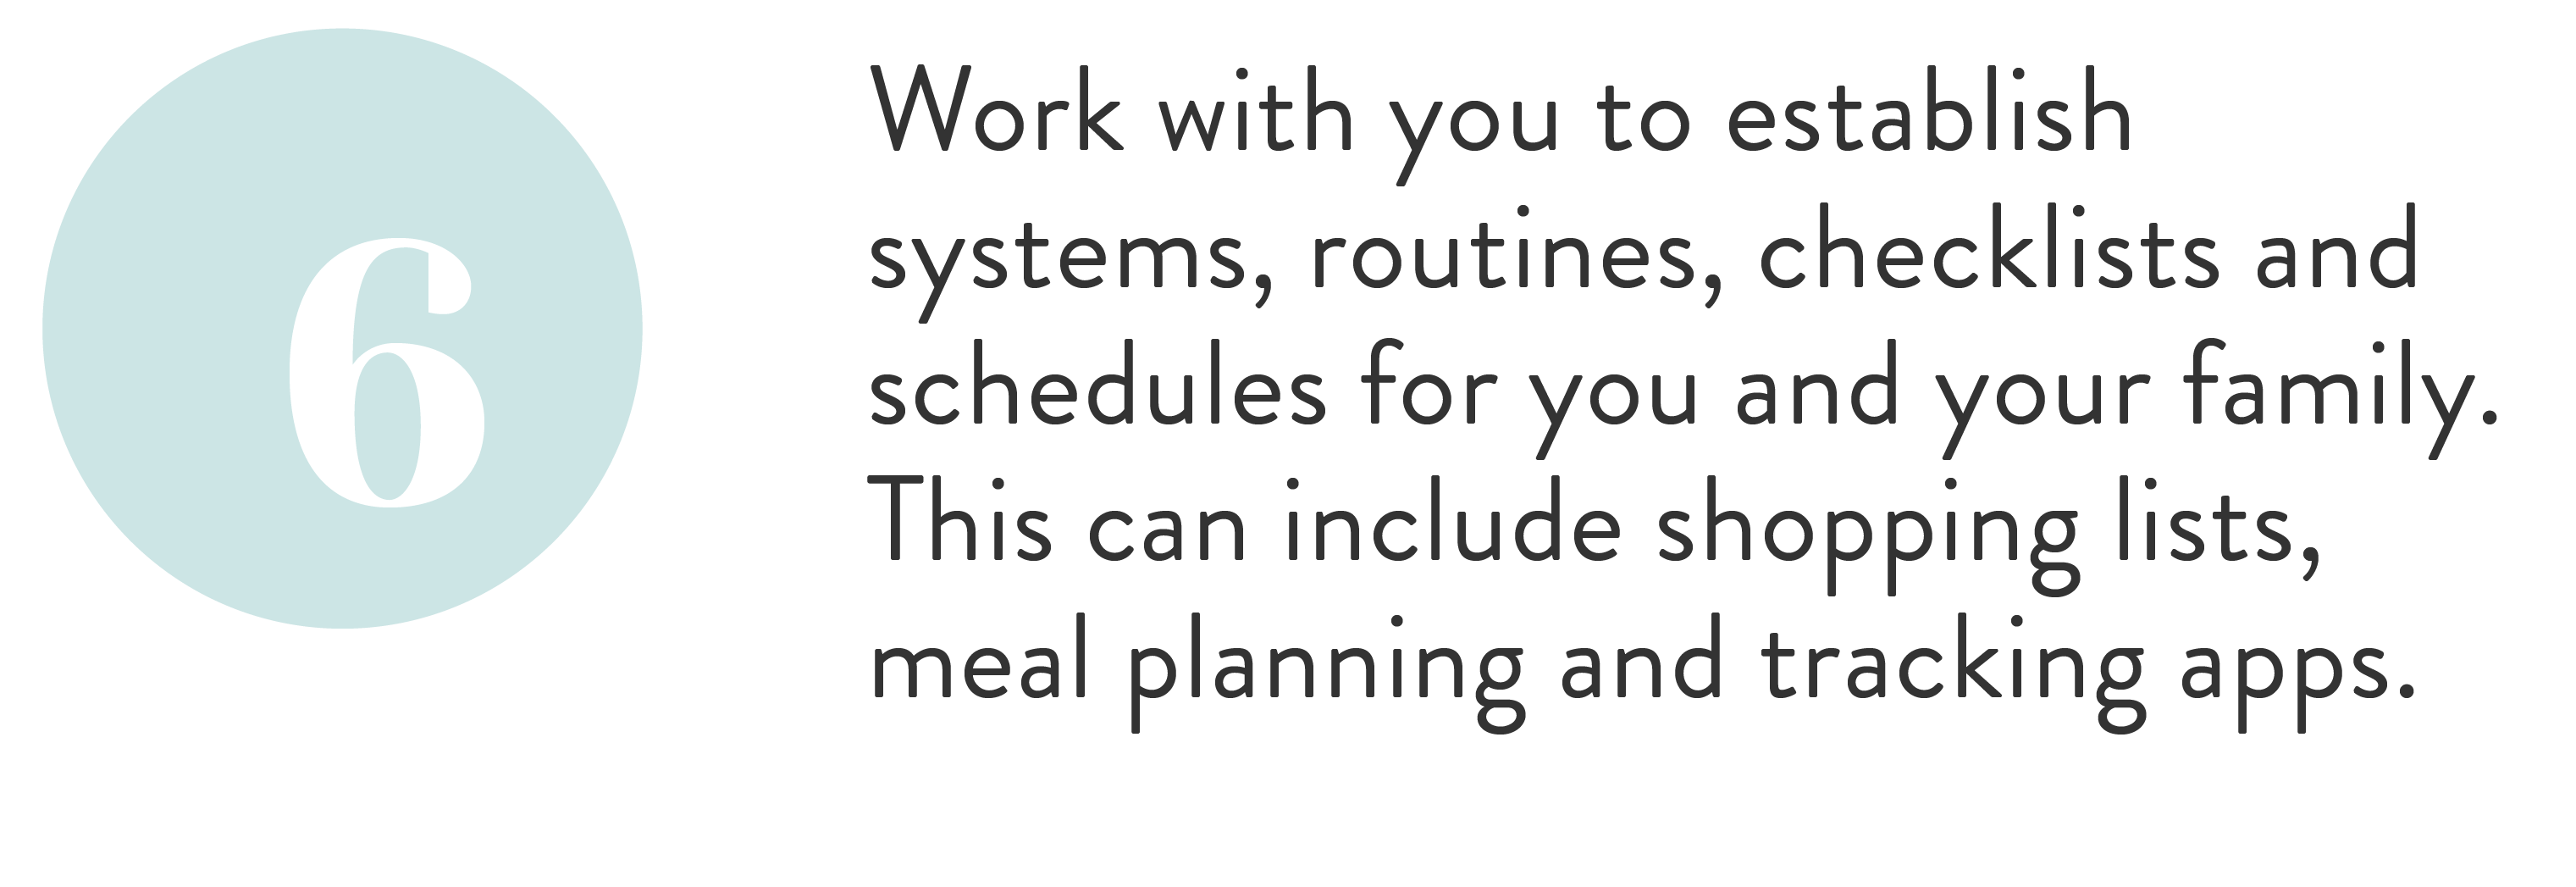 systems routines checklists schedules